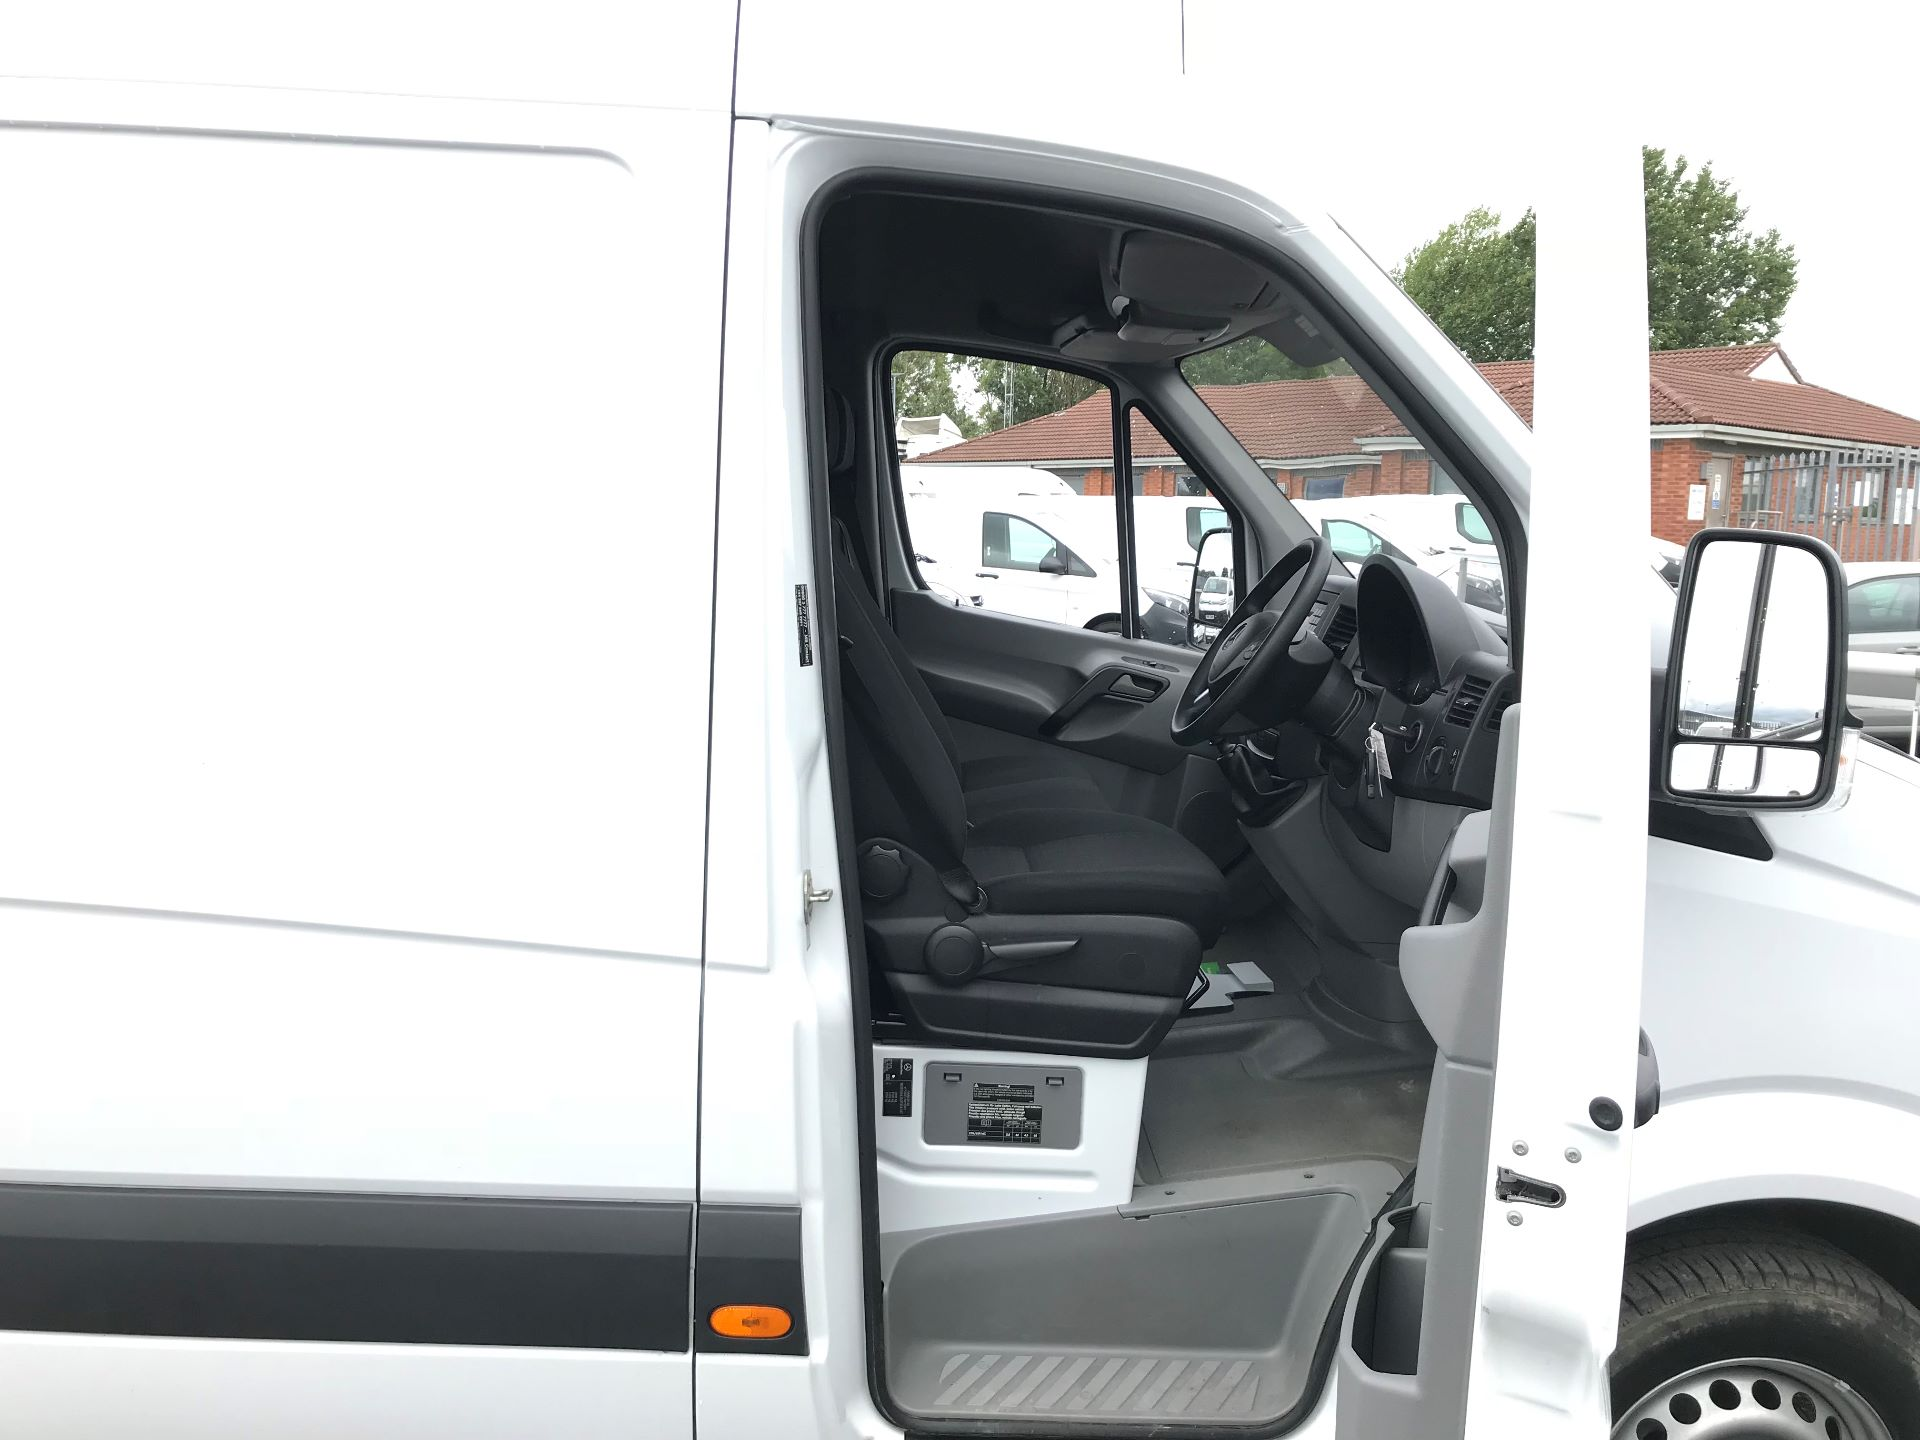 2017 Mercedes-Benz Sprinter 3.5T High Roof Van *VALUE RANGE VEHICLE CONDITION REFLECTED IN PRICE* (KY17GXT) Image 11